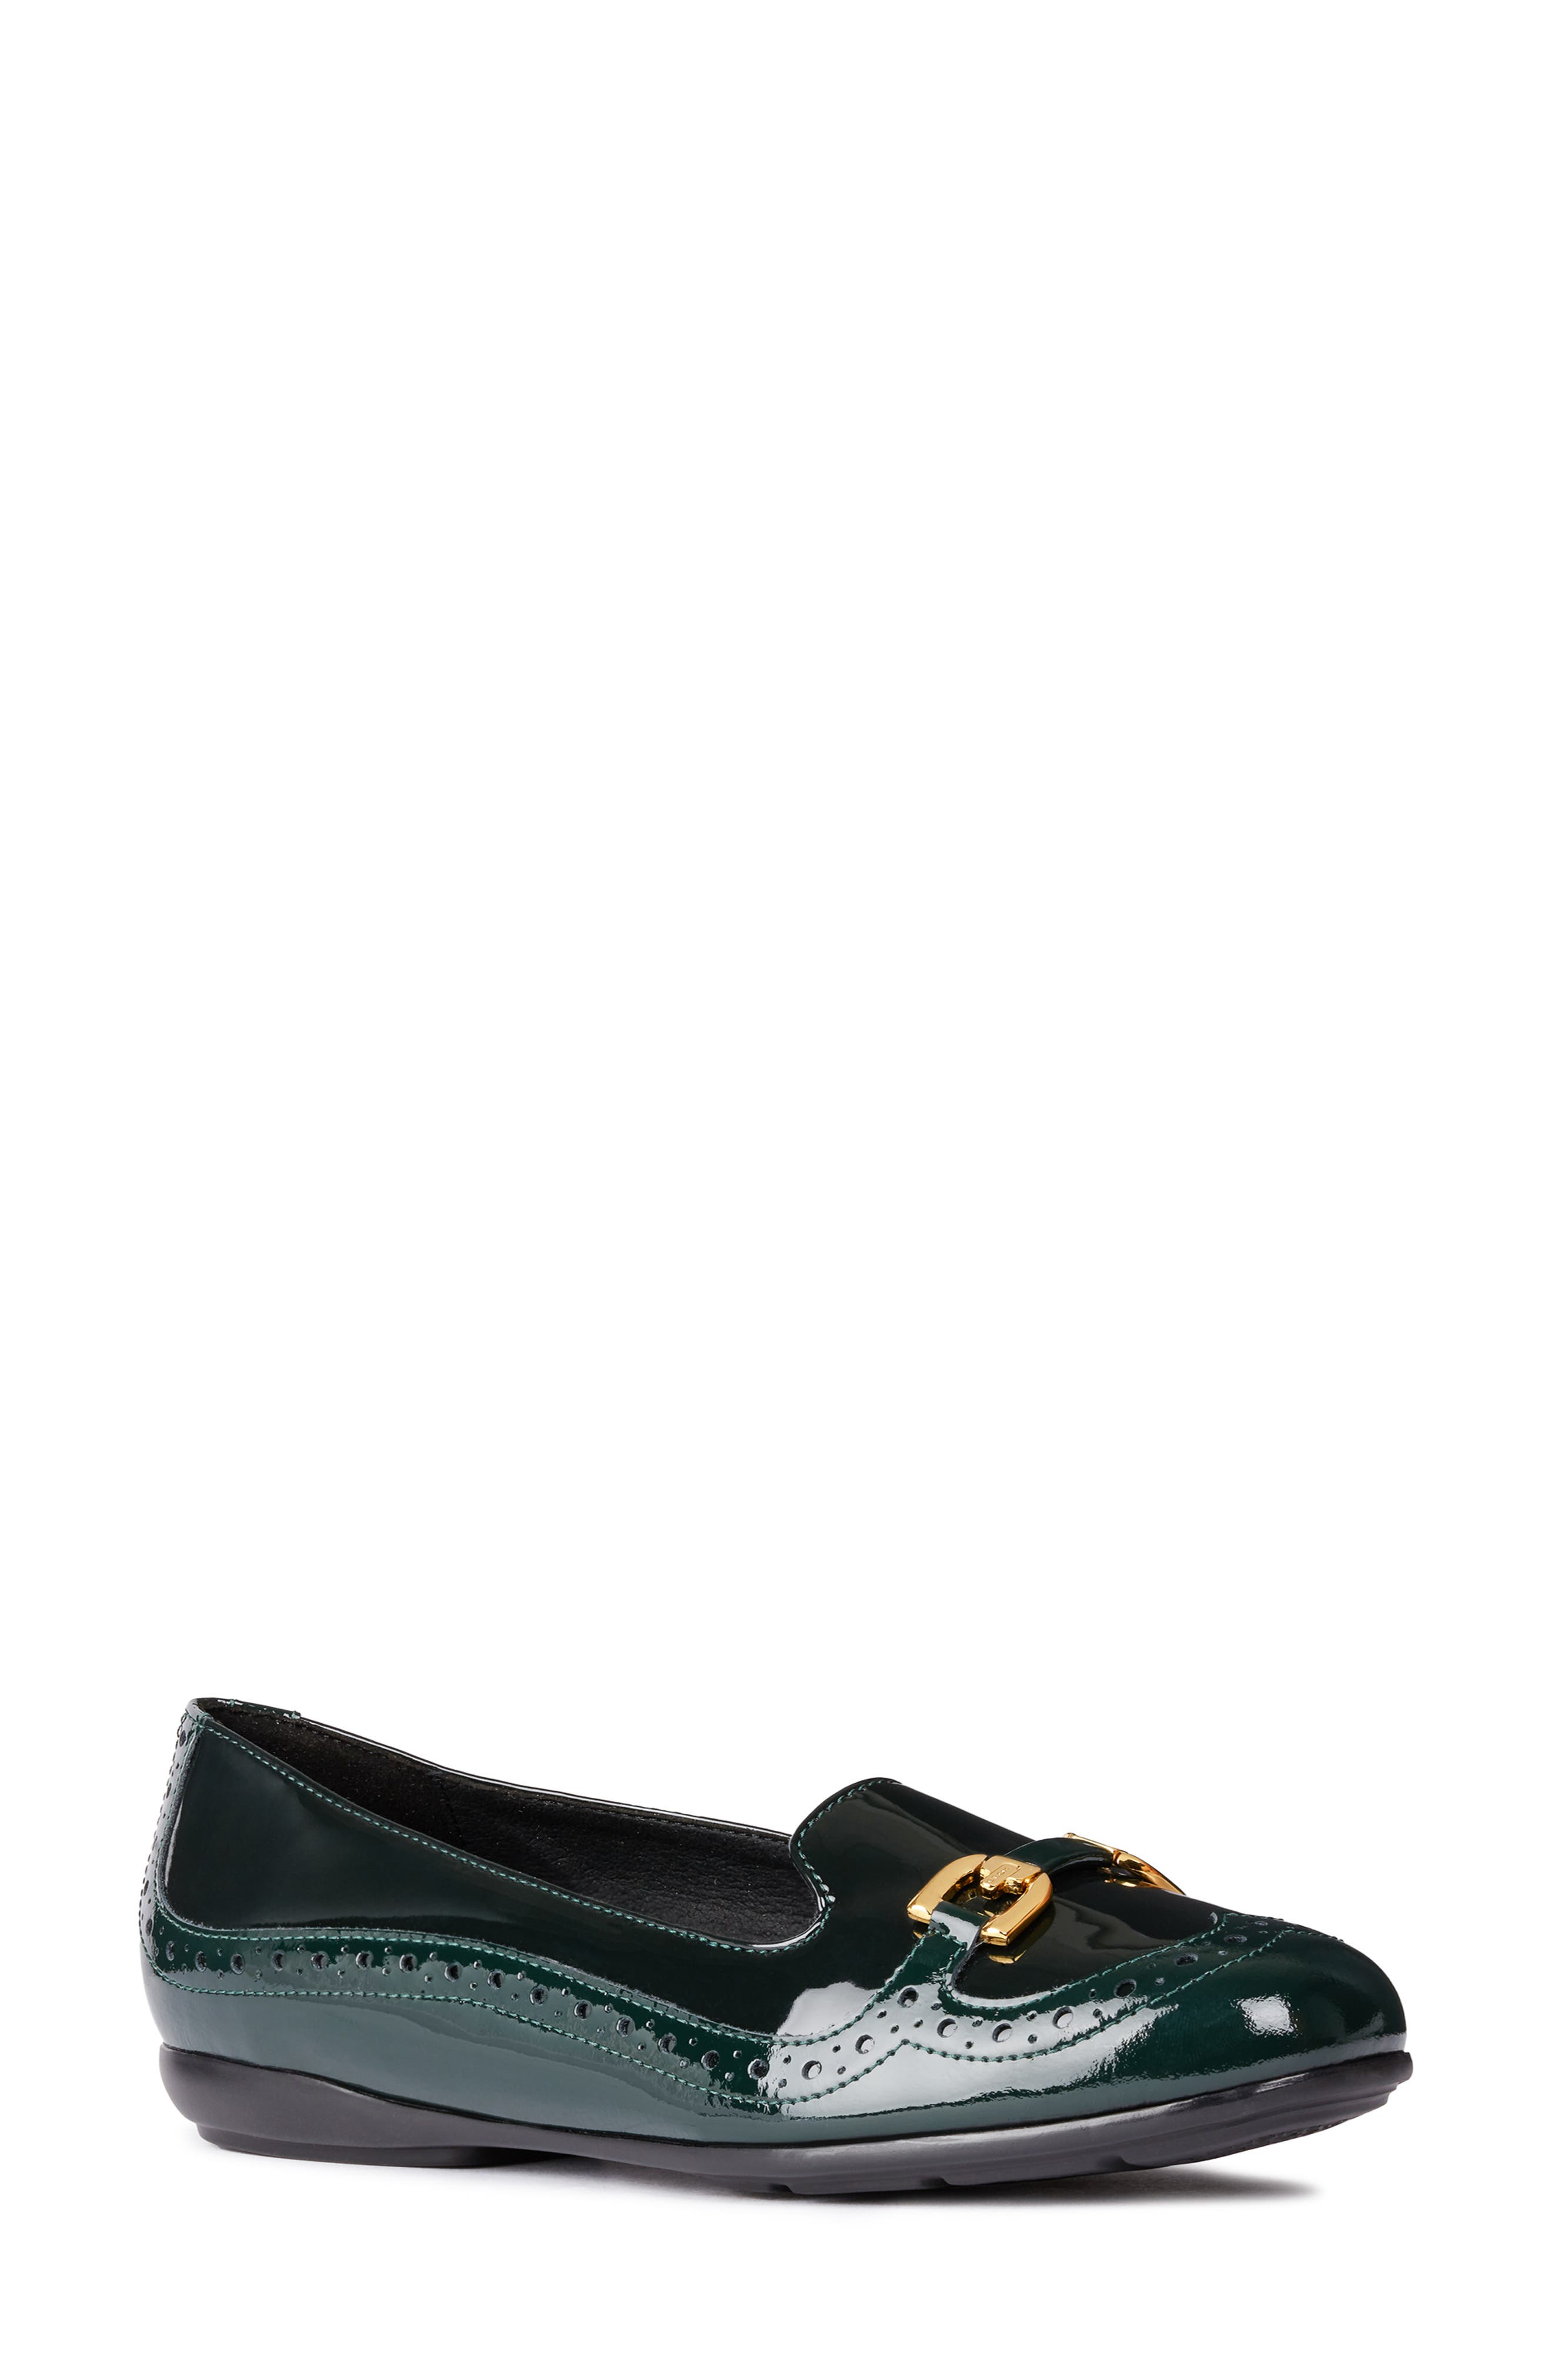 Annytah Loafer,                             Main thumbnail 1, color,                             FOREST FAUX PATENT LEATHER